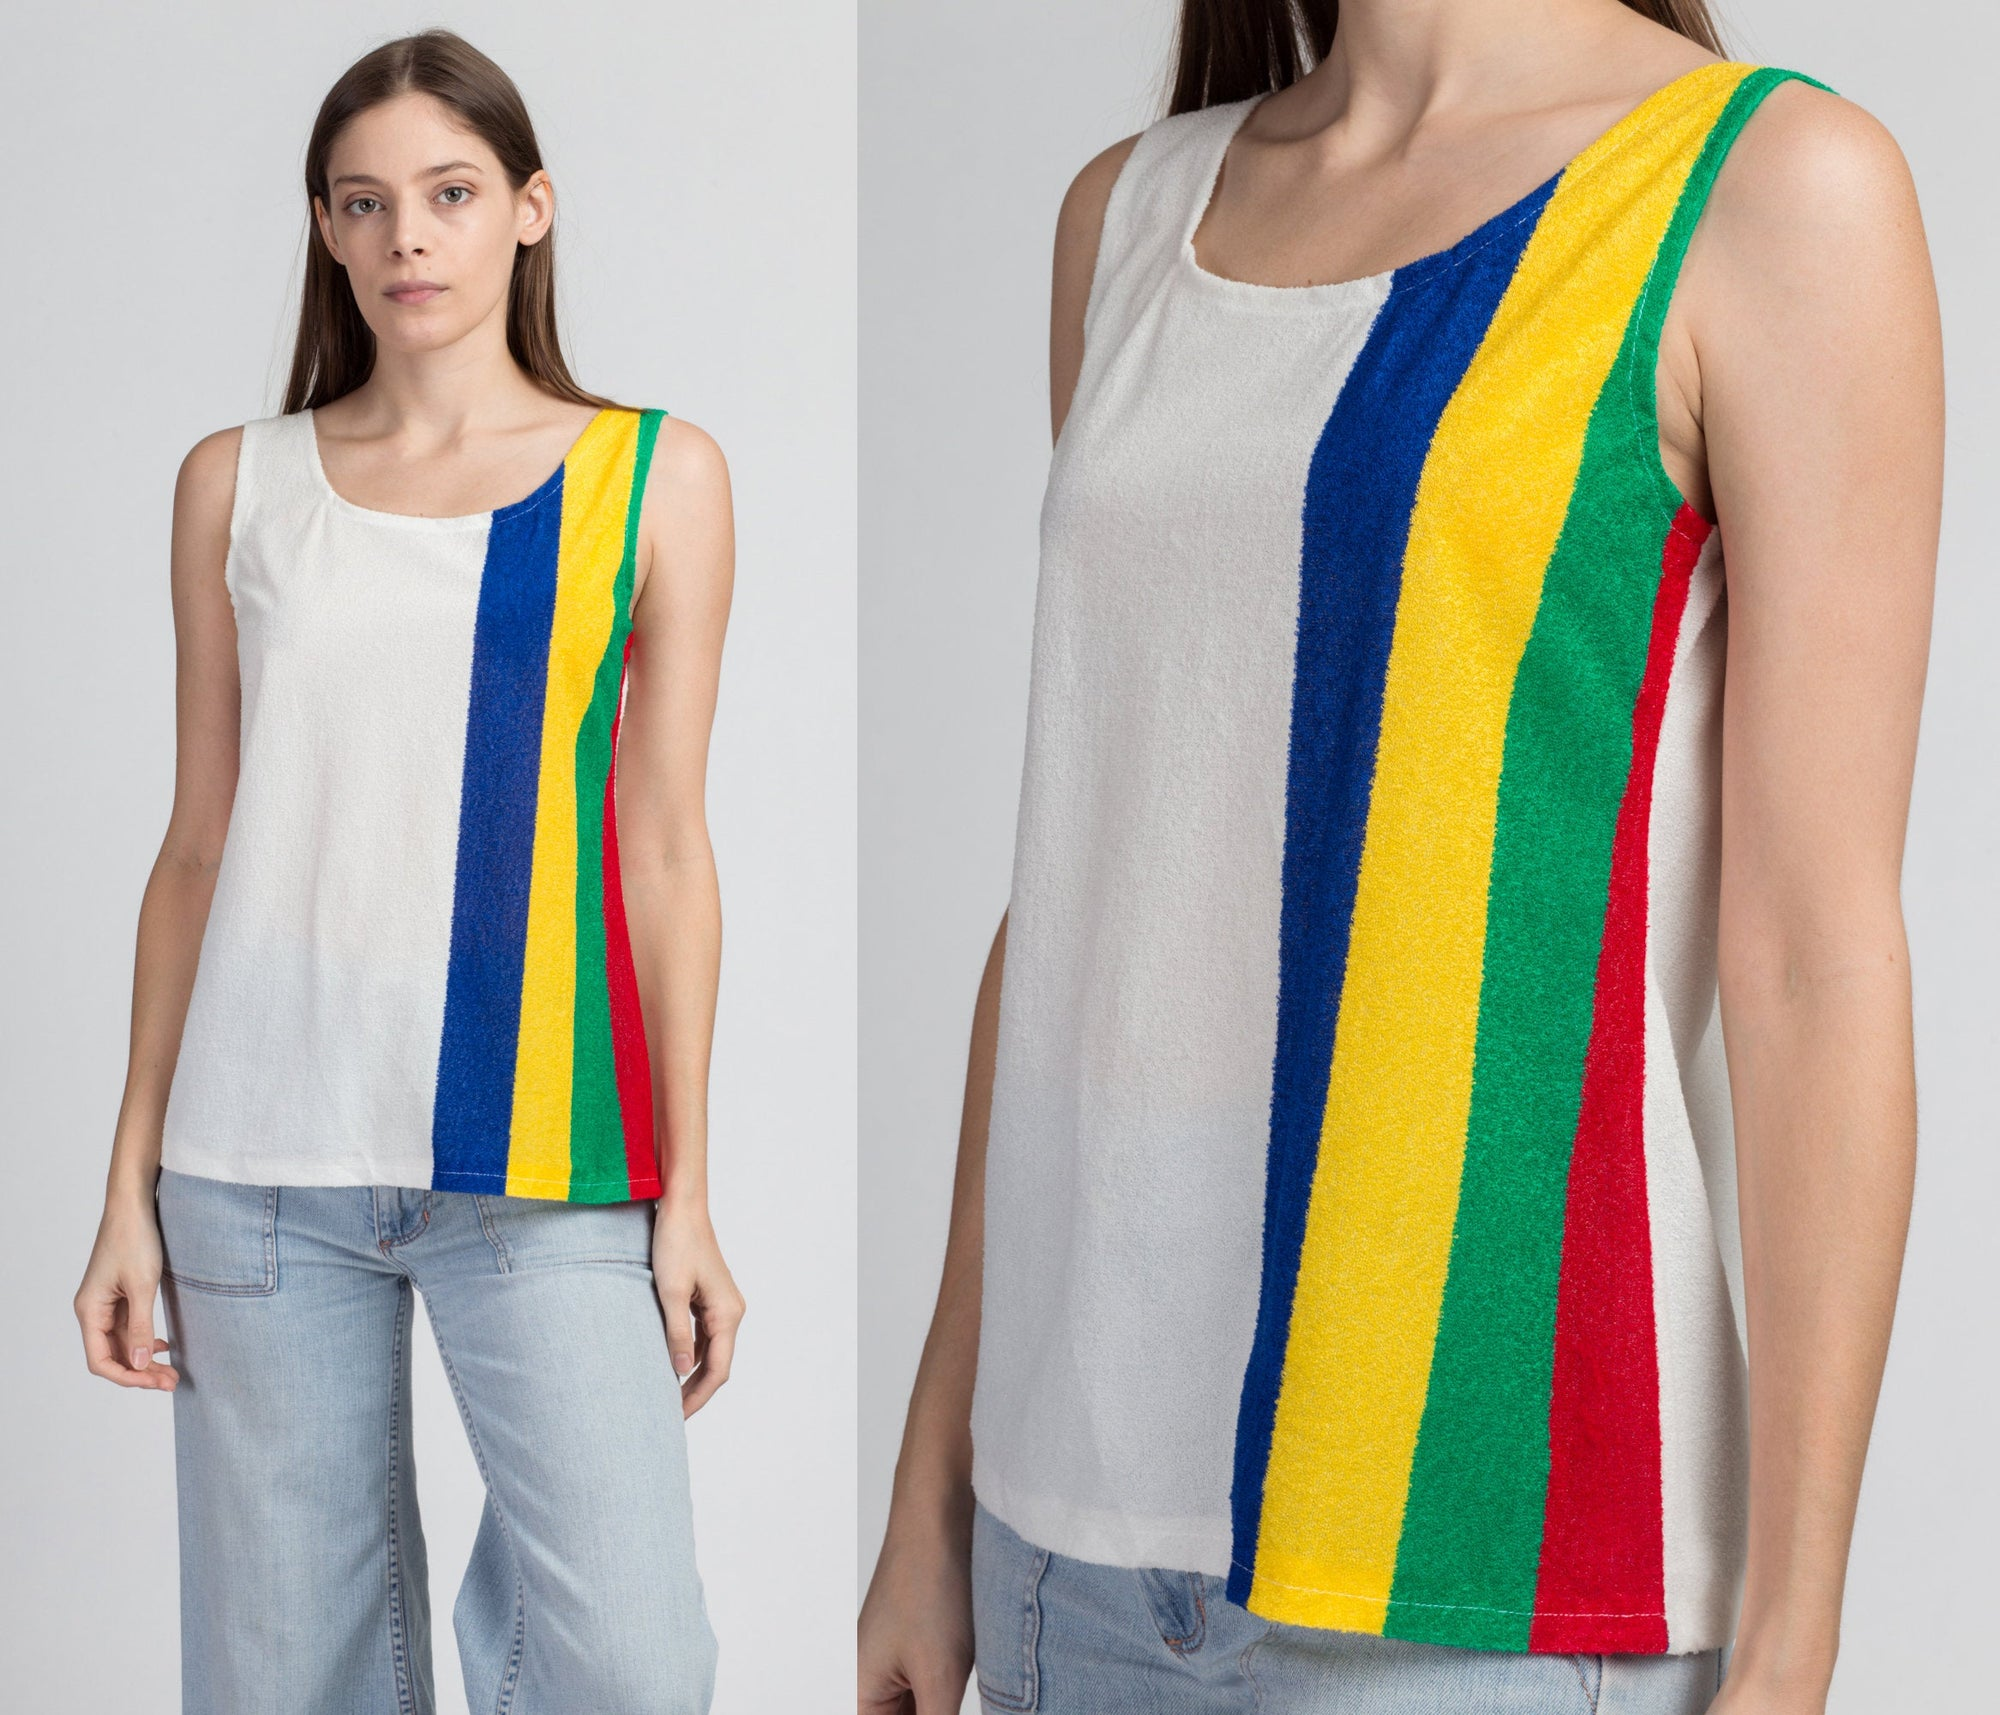 70s Striped Terrycloth Tank Top - Medium